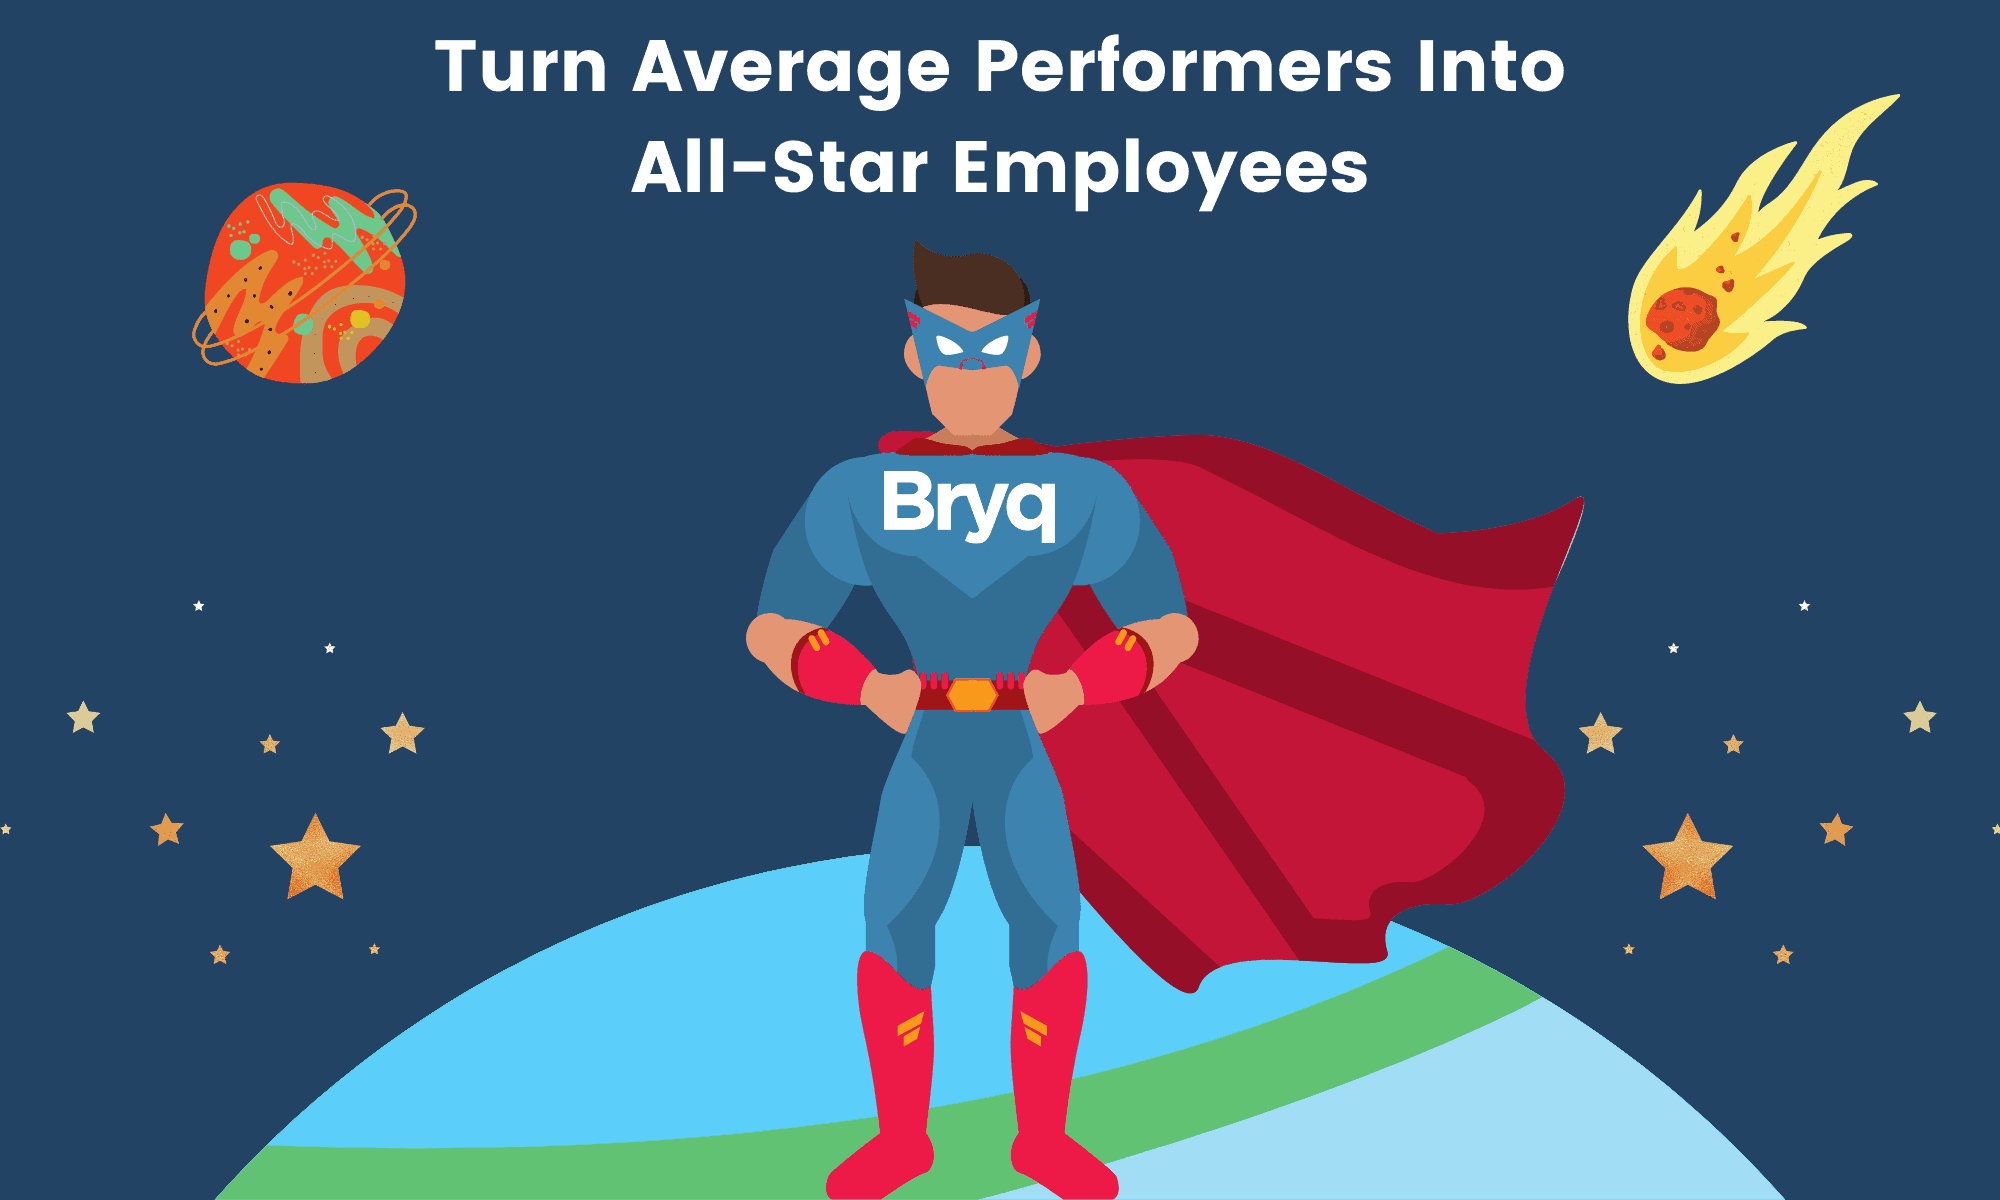 Average performers are important to businesses. They can become all-star performers with the right training and resources.